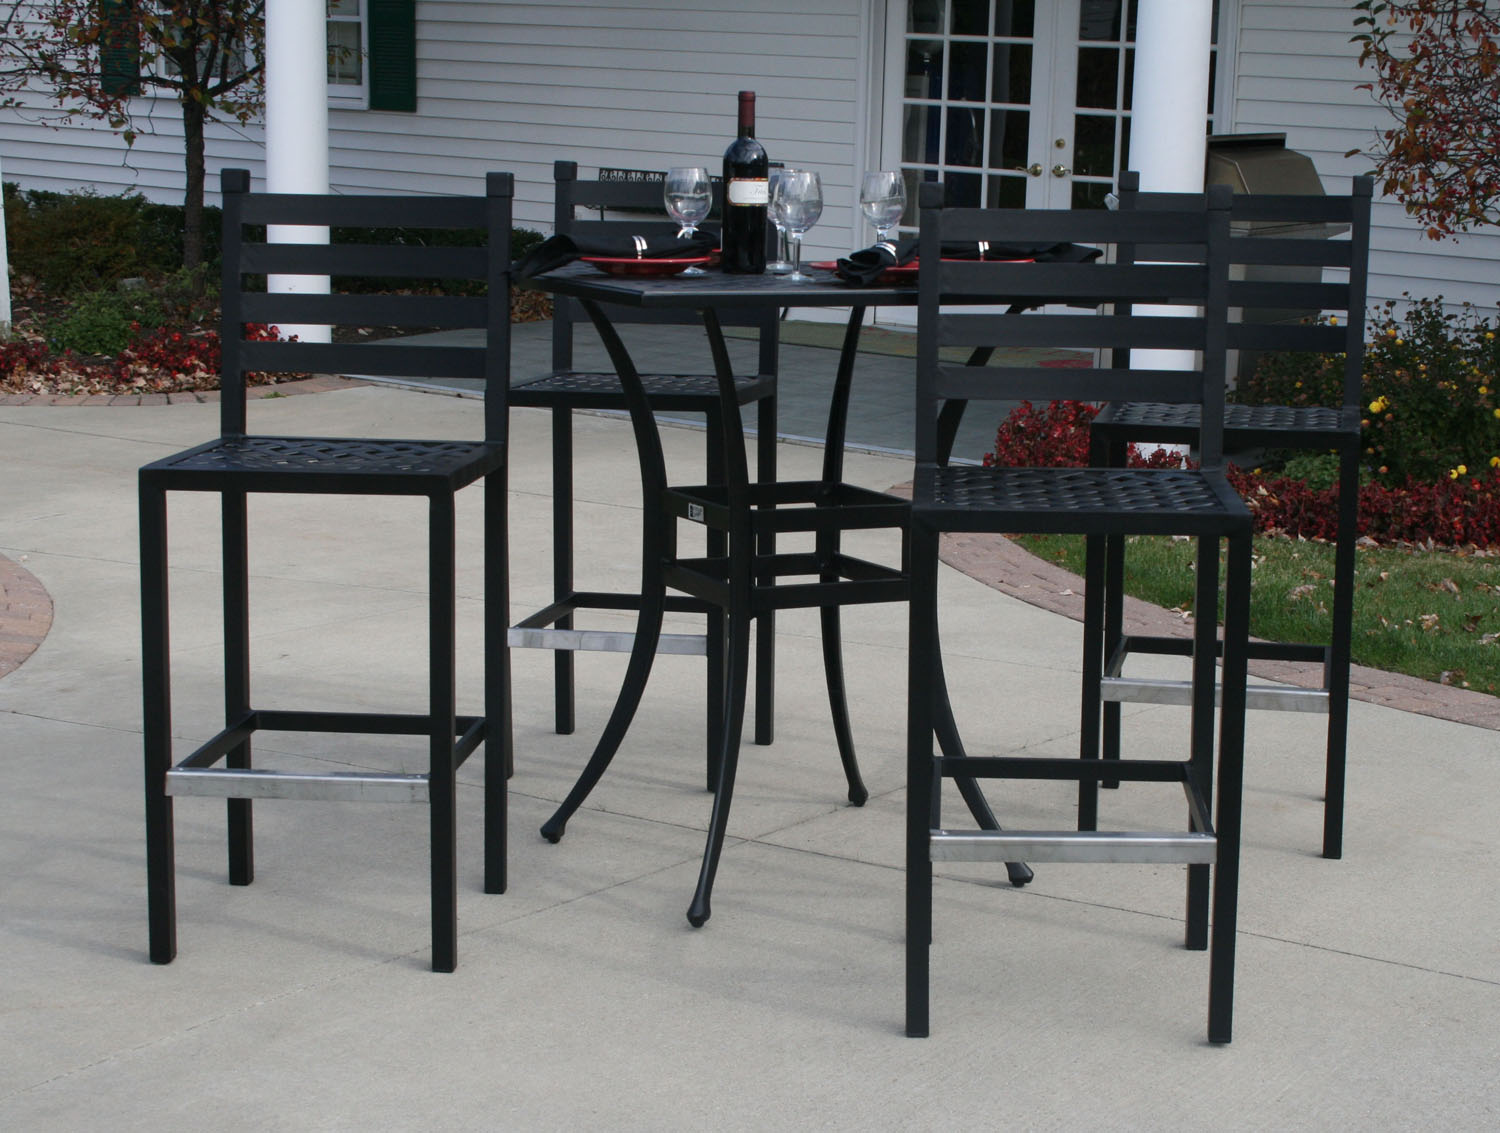 Ansley Luxury 4 Person All Welded Cast Aluminum Patio Furniture Bar Height Set W 36 Square Table